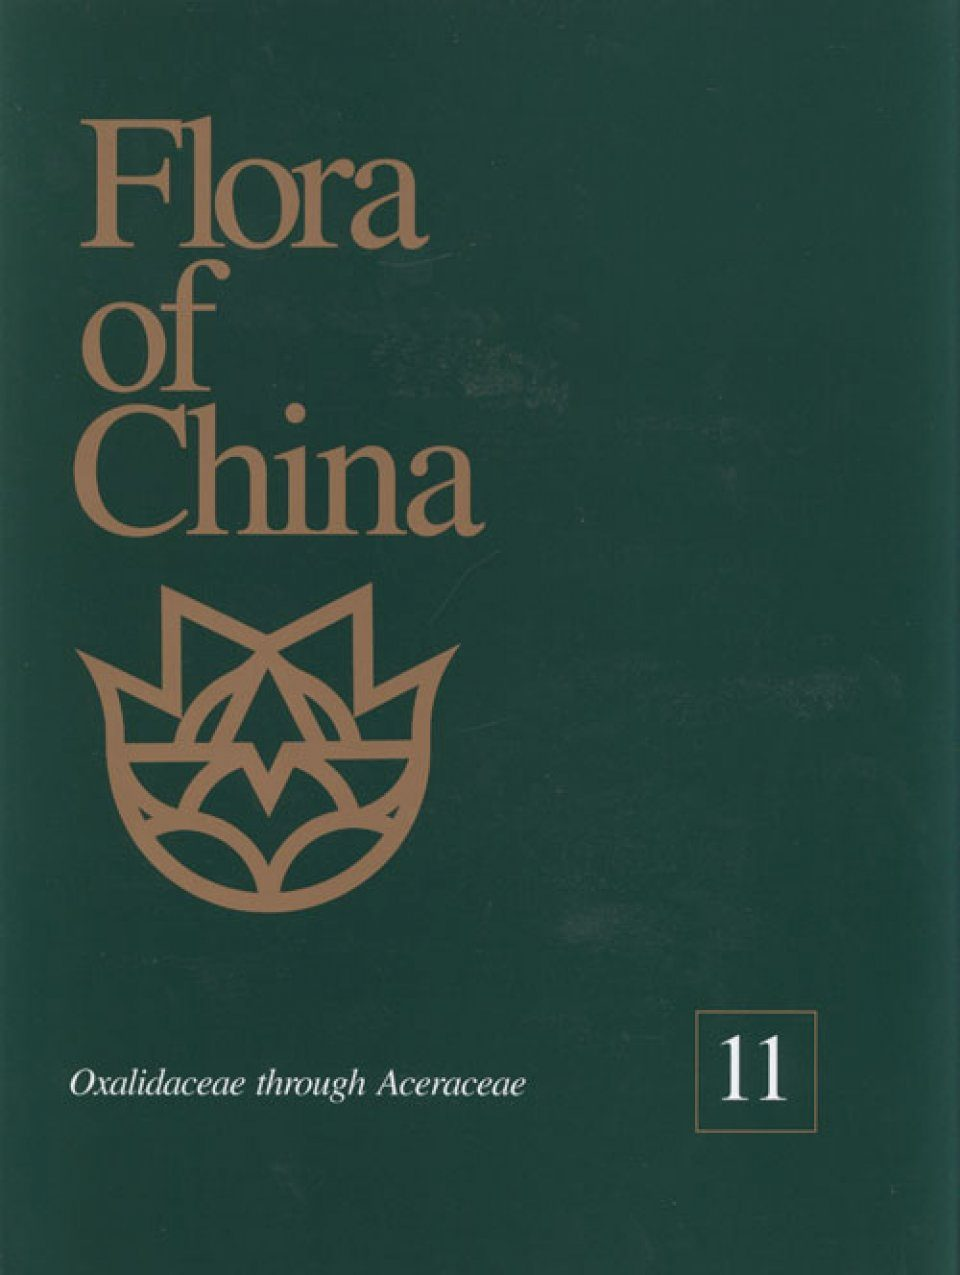 Flora of China, Volume 11: Oxalidaceae through Aceraceae